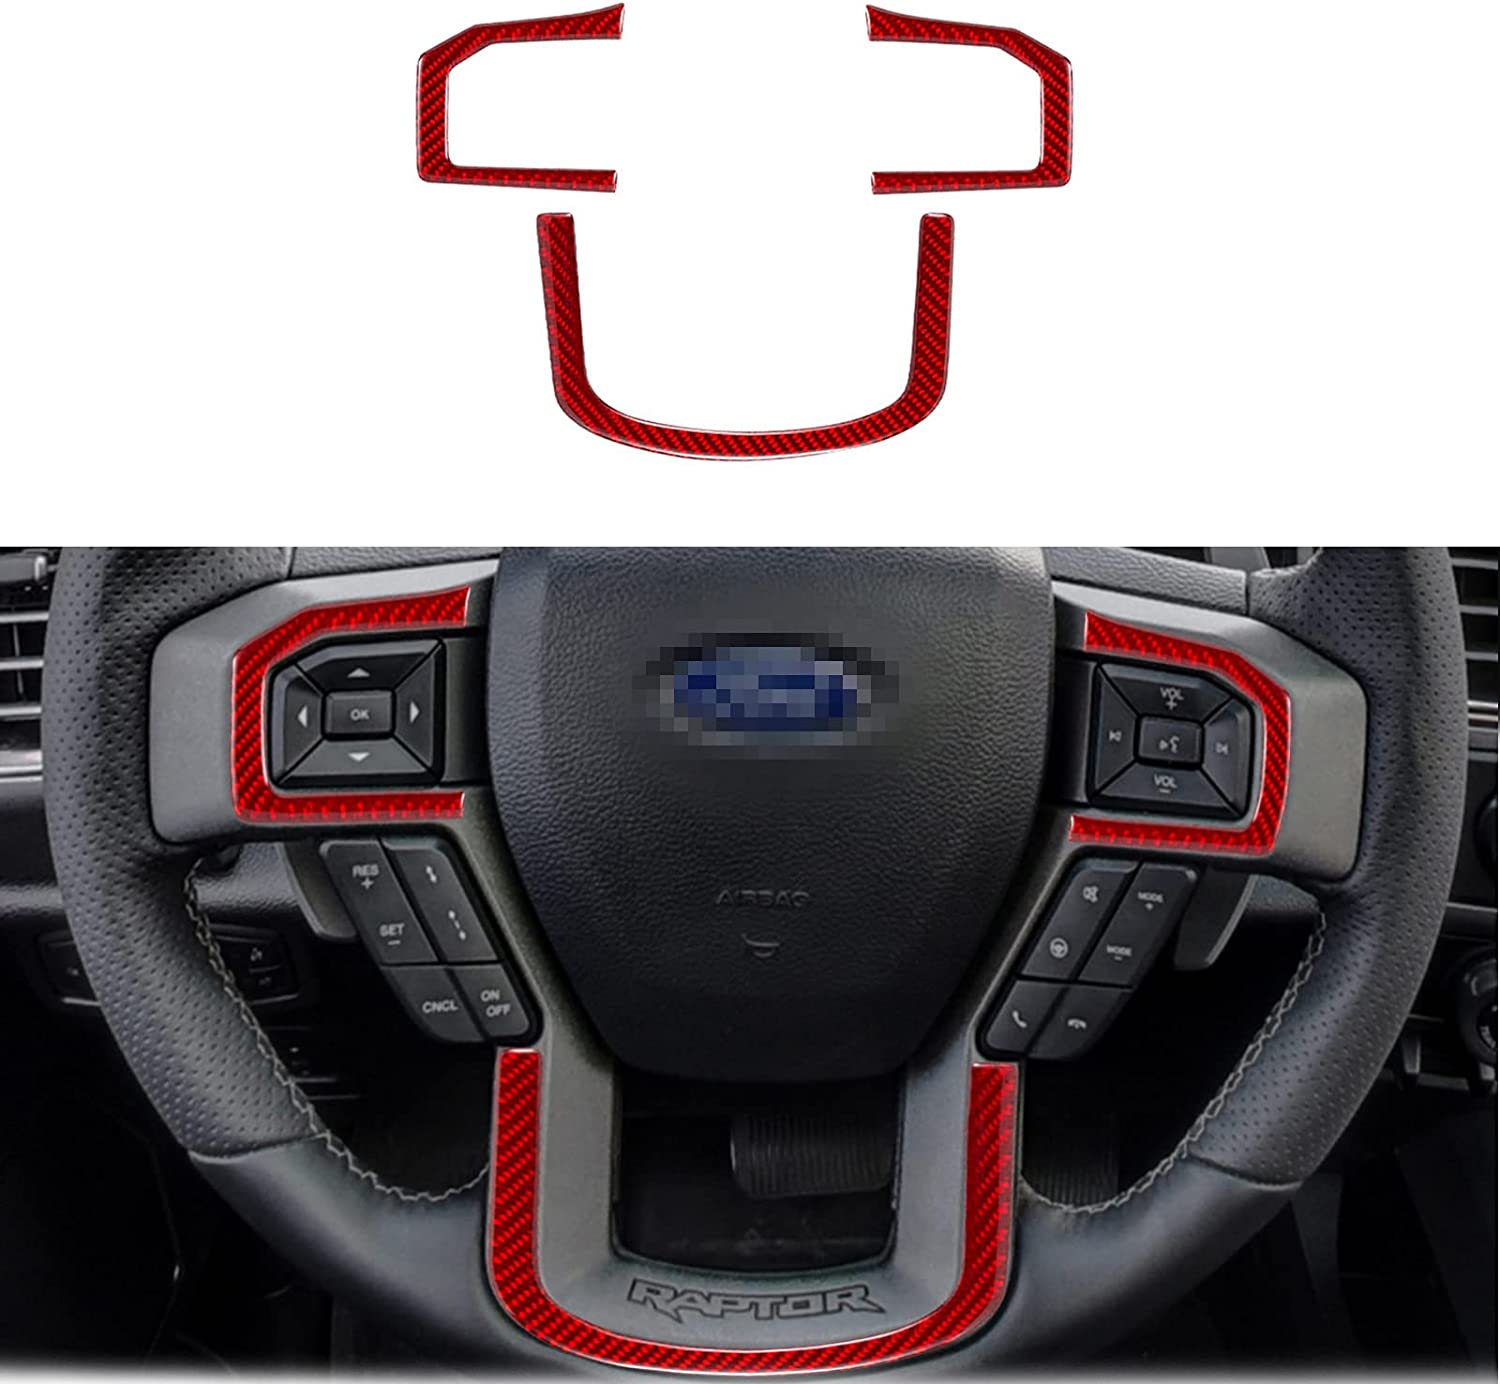 3Pcs nuoozy Compatible with Carbon Fiber Steering Wheel Cover Trim for Ford F-150 2015 2016 2017 2018 2019 2020 Red